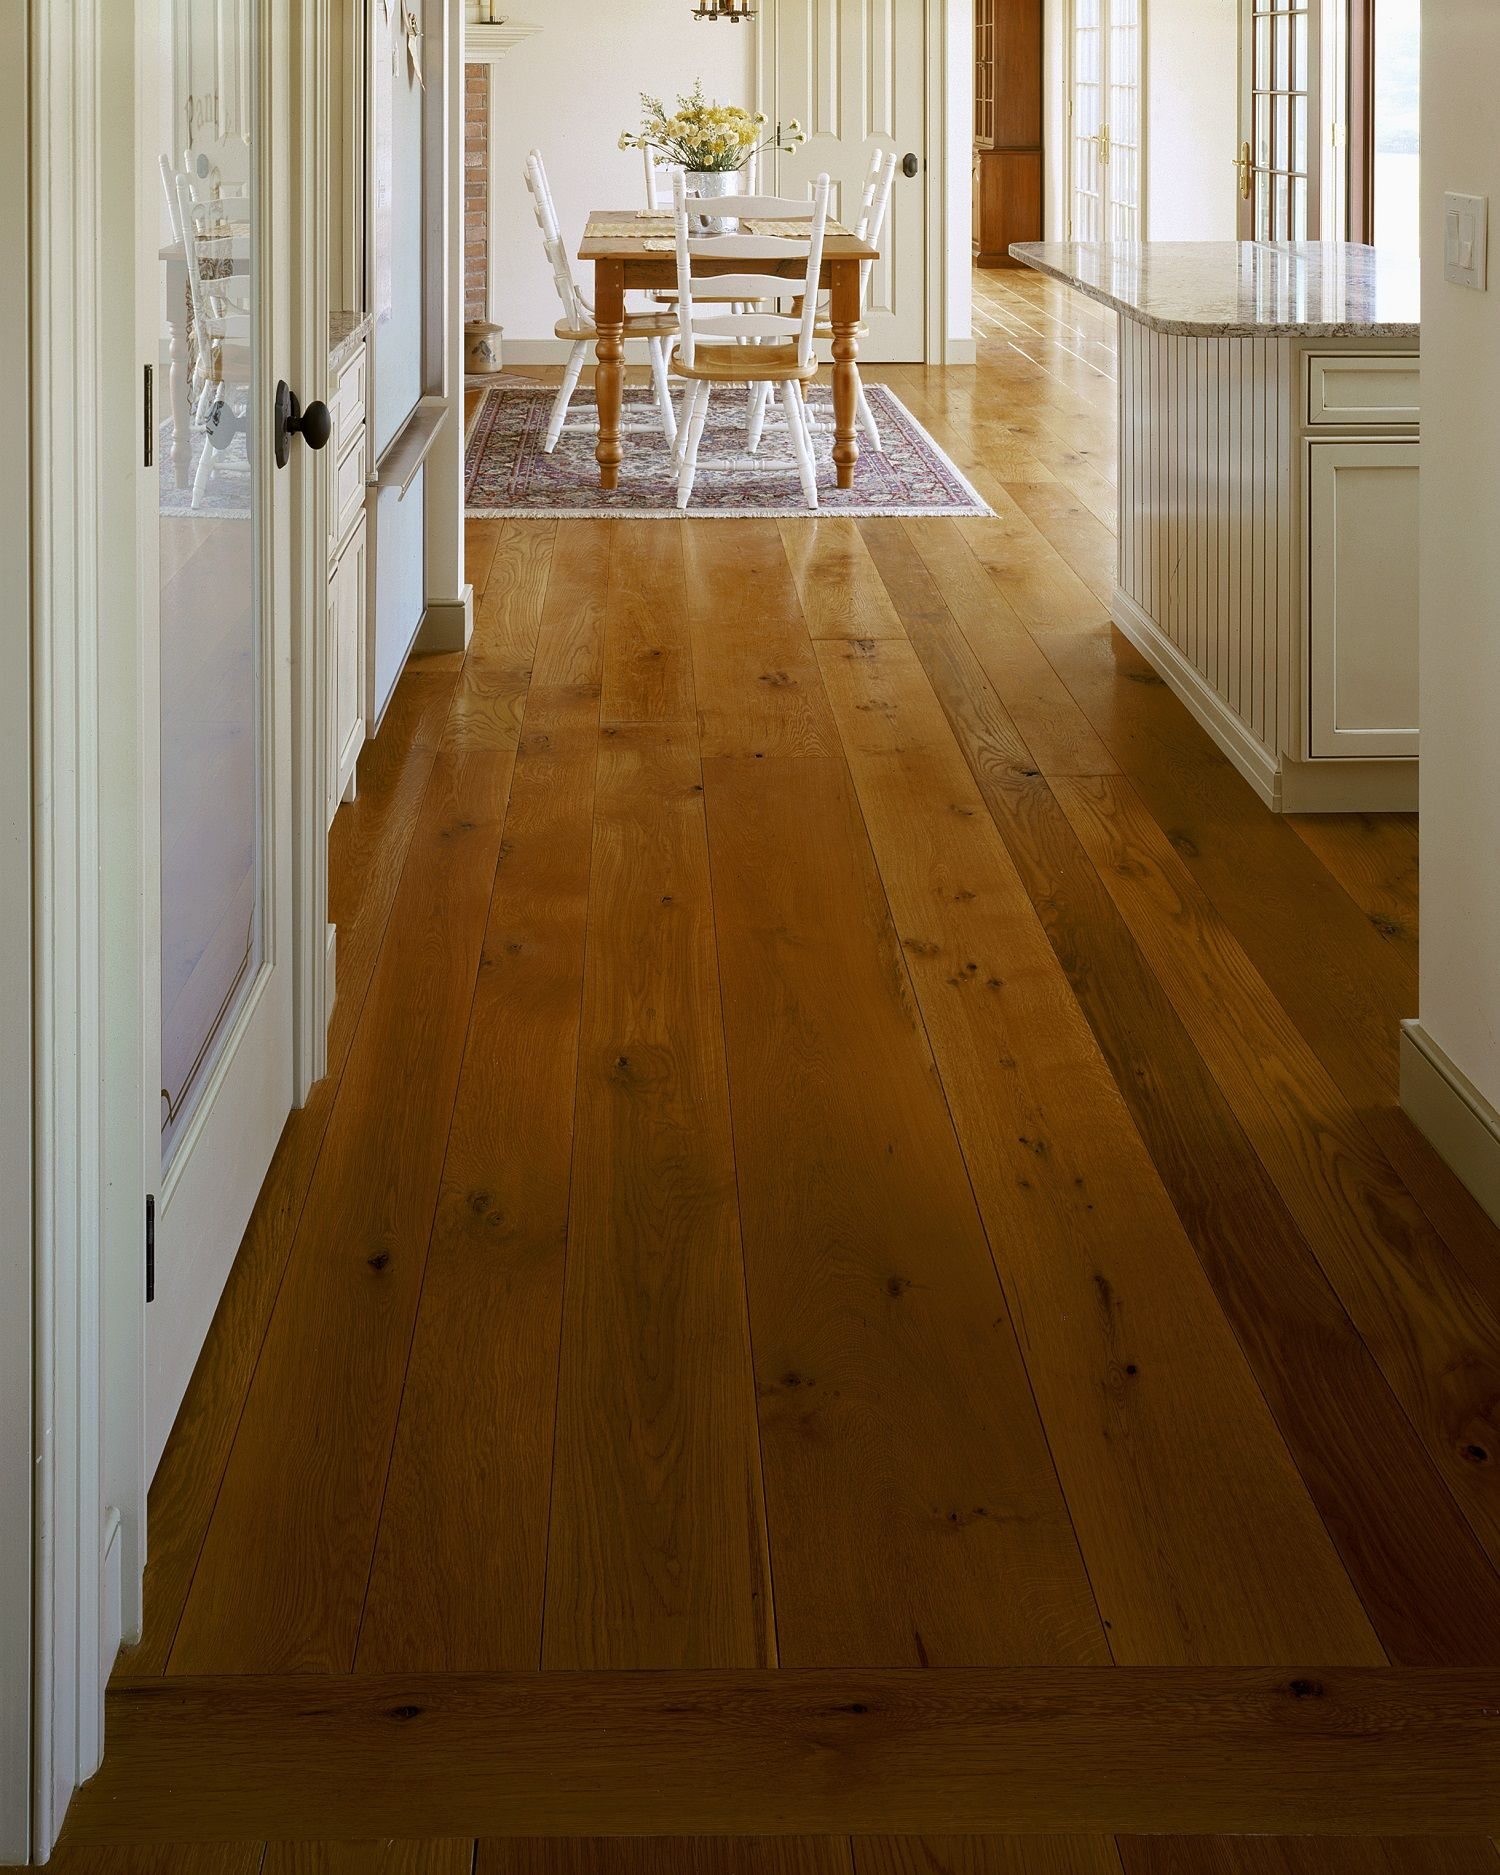 Make The Most Of Spaces With Larger Plank Wood Flooring Carlisle Wide Plank Floors Wide Plank Flooring Wood Floors Wide Plank Flooring